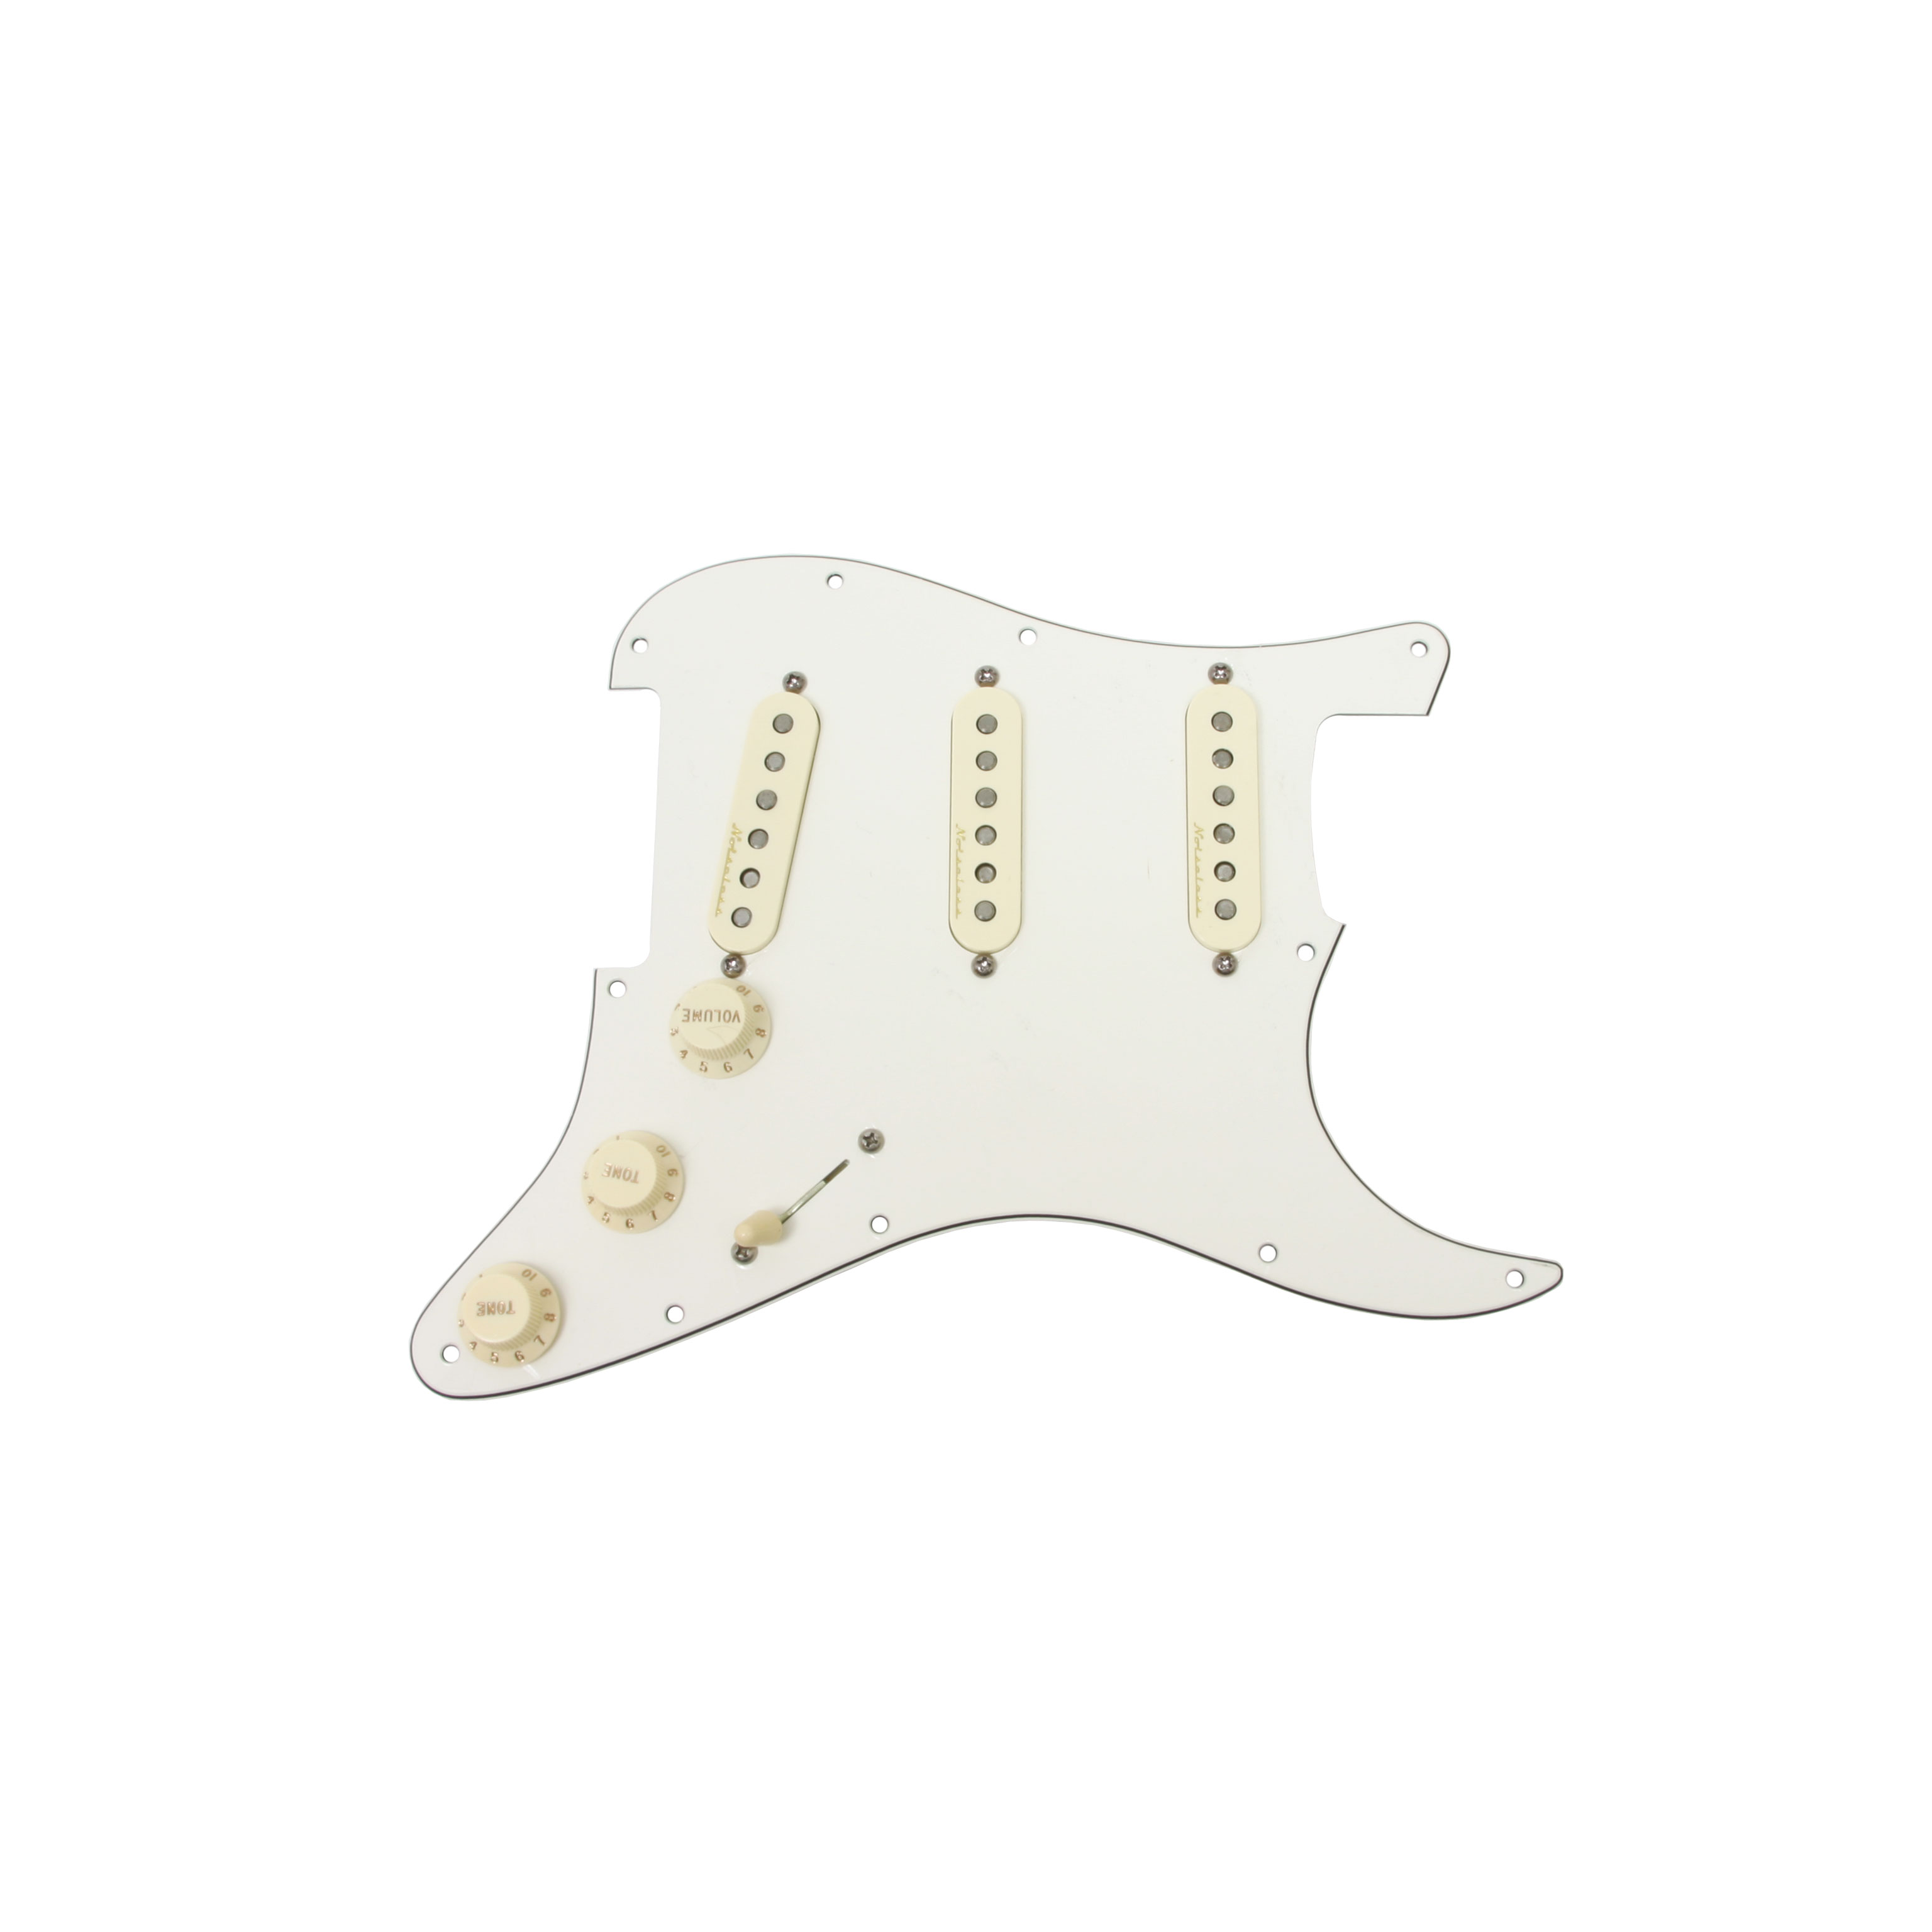 Fender Strat Stratocaster Vintage Noiseless Prewired Loaded Pickguard PA/AW